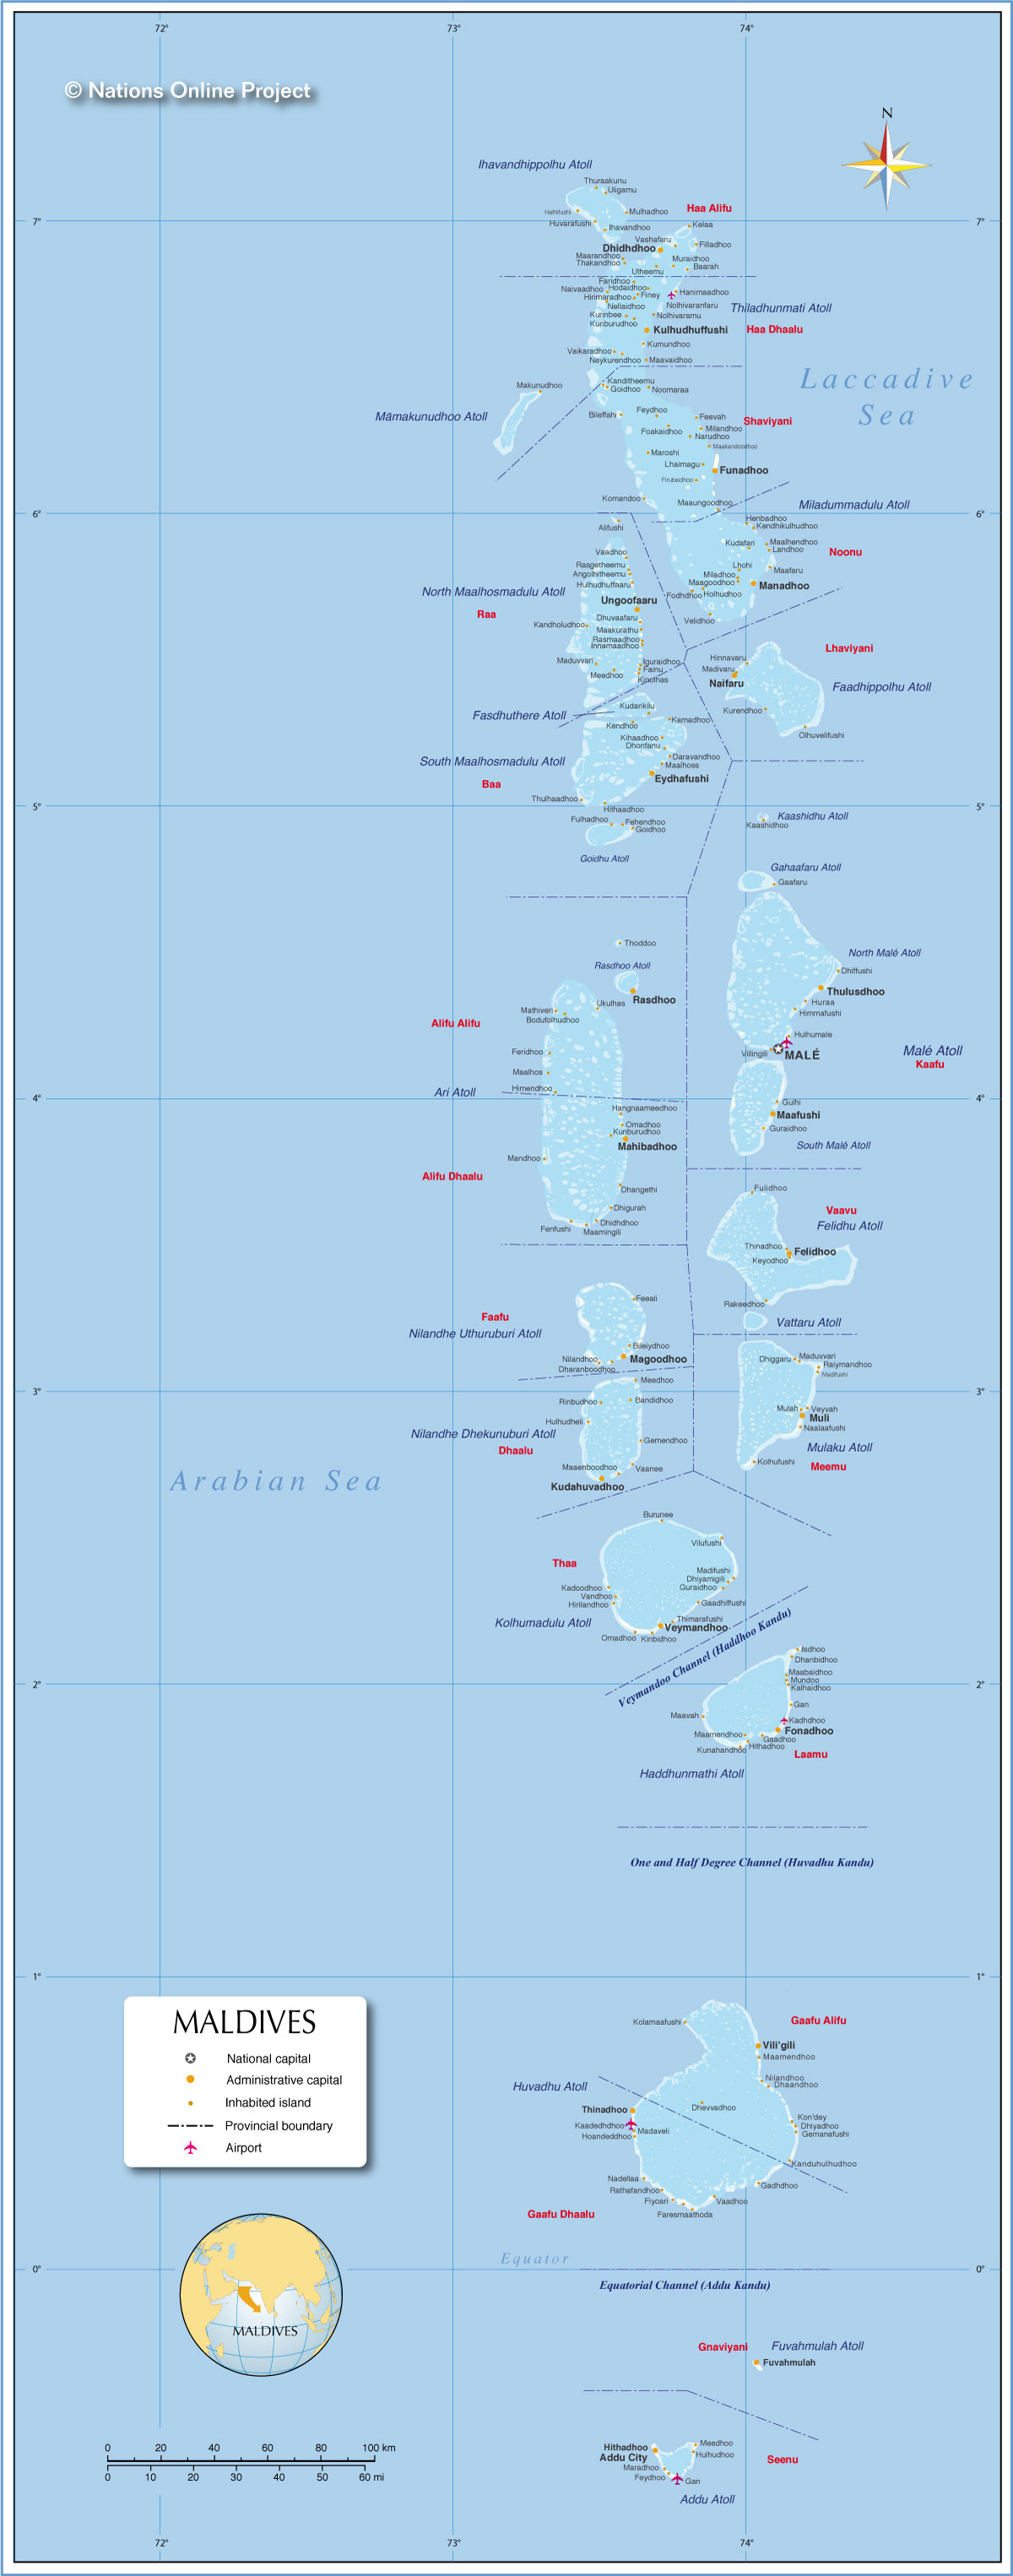 Political Map of Maldives Nations Online Project